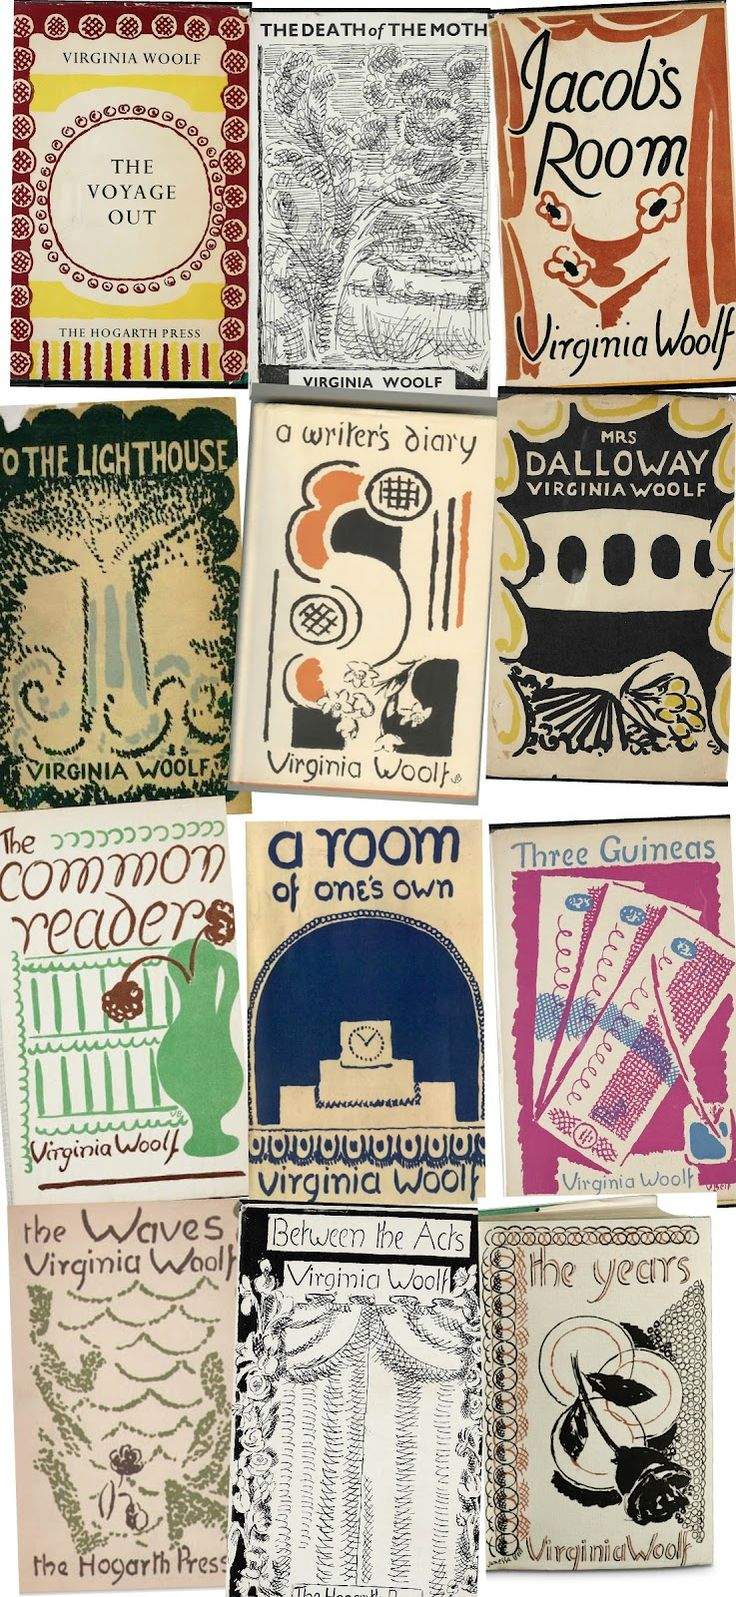 Sisters-Virginia Woolf and Vanessa Bell-author & artist of these book covers-